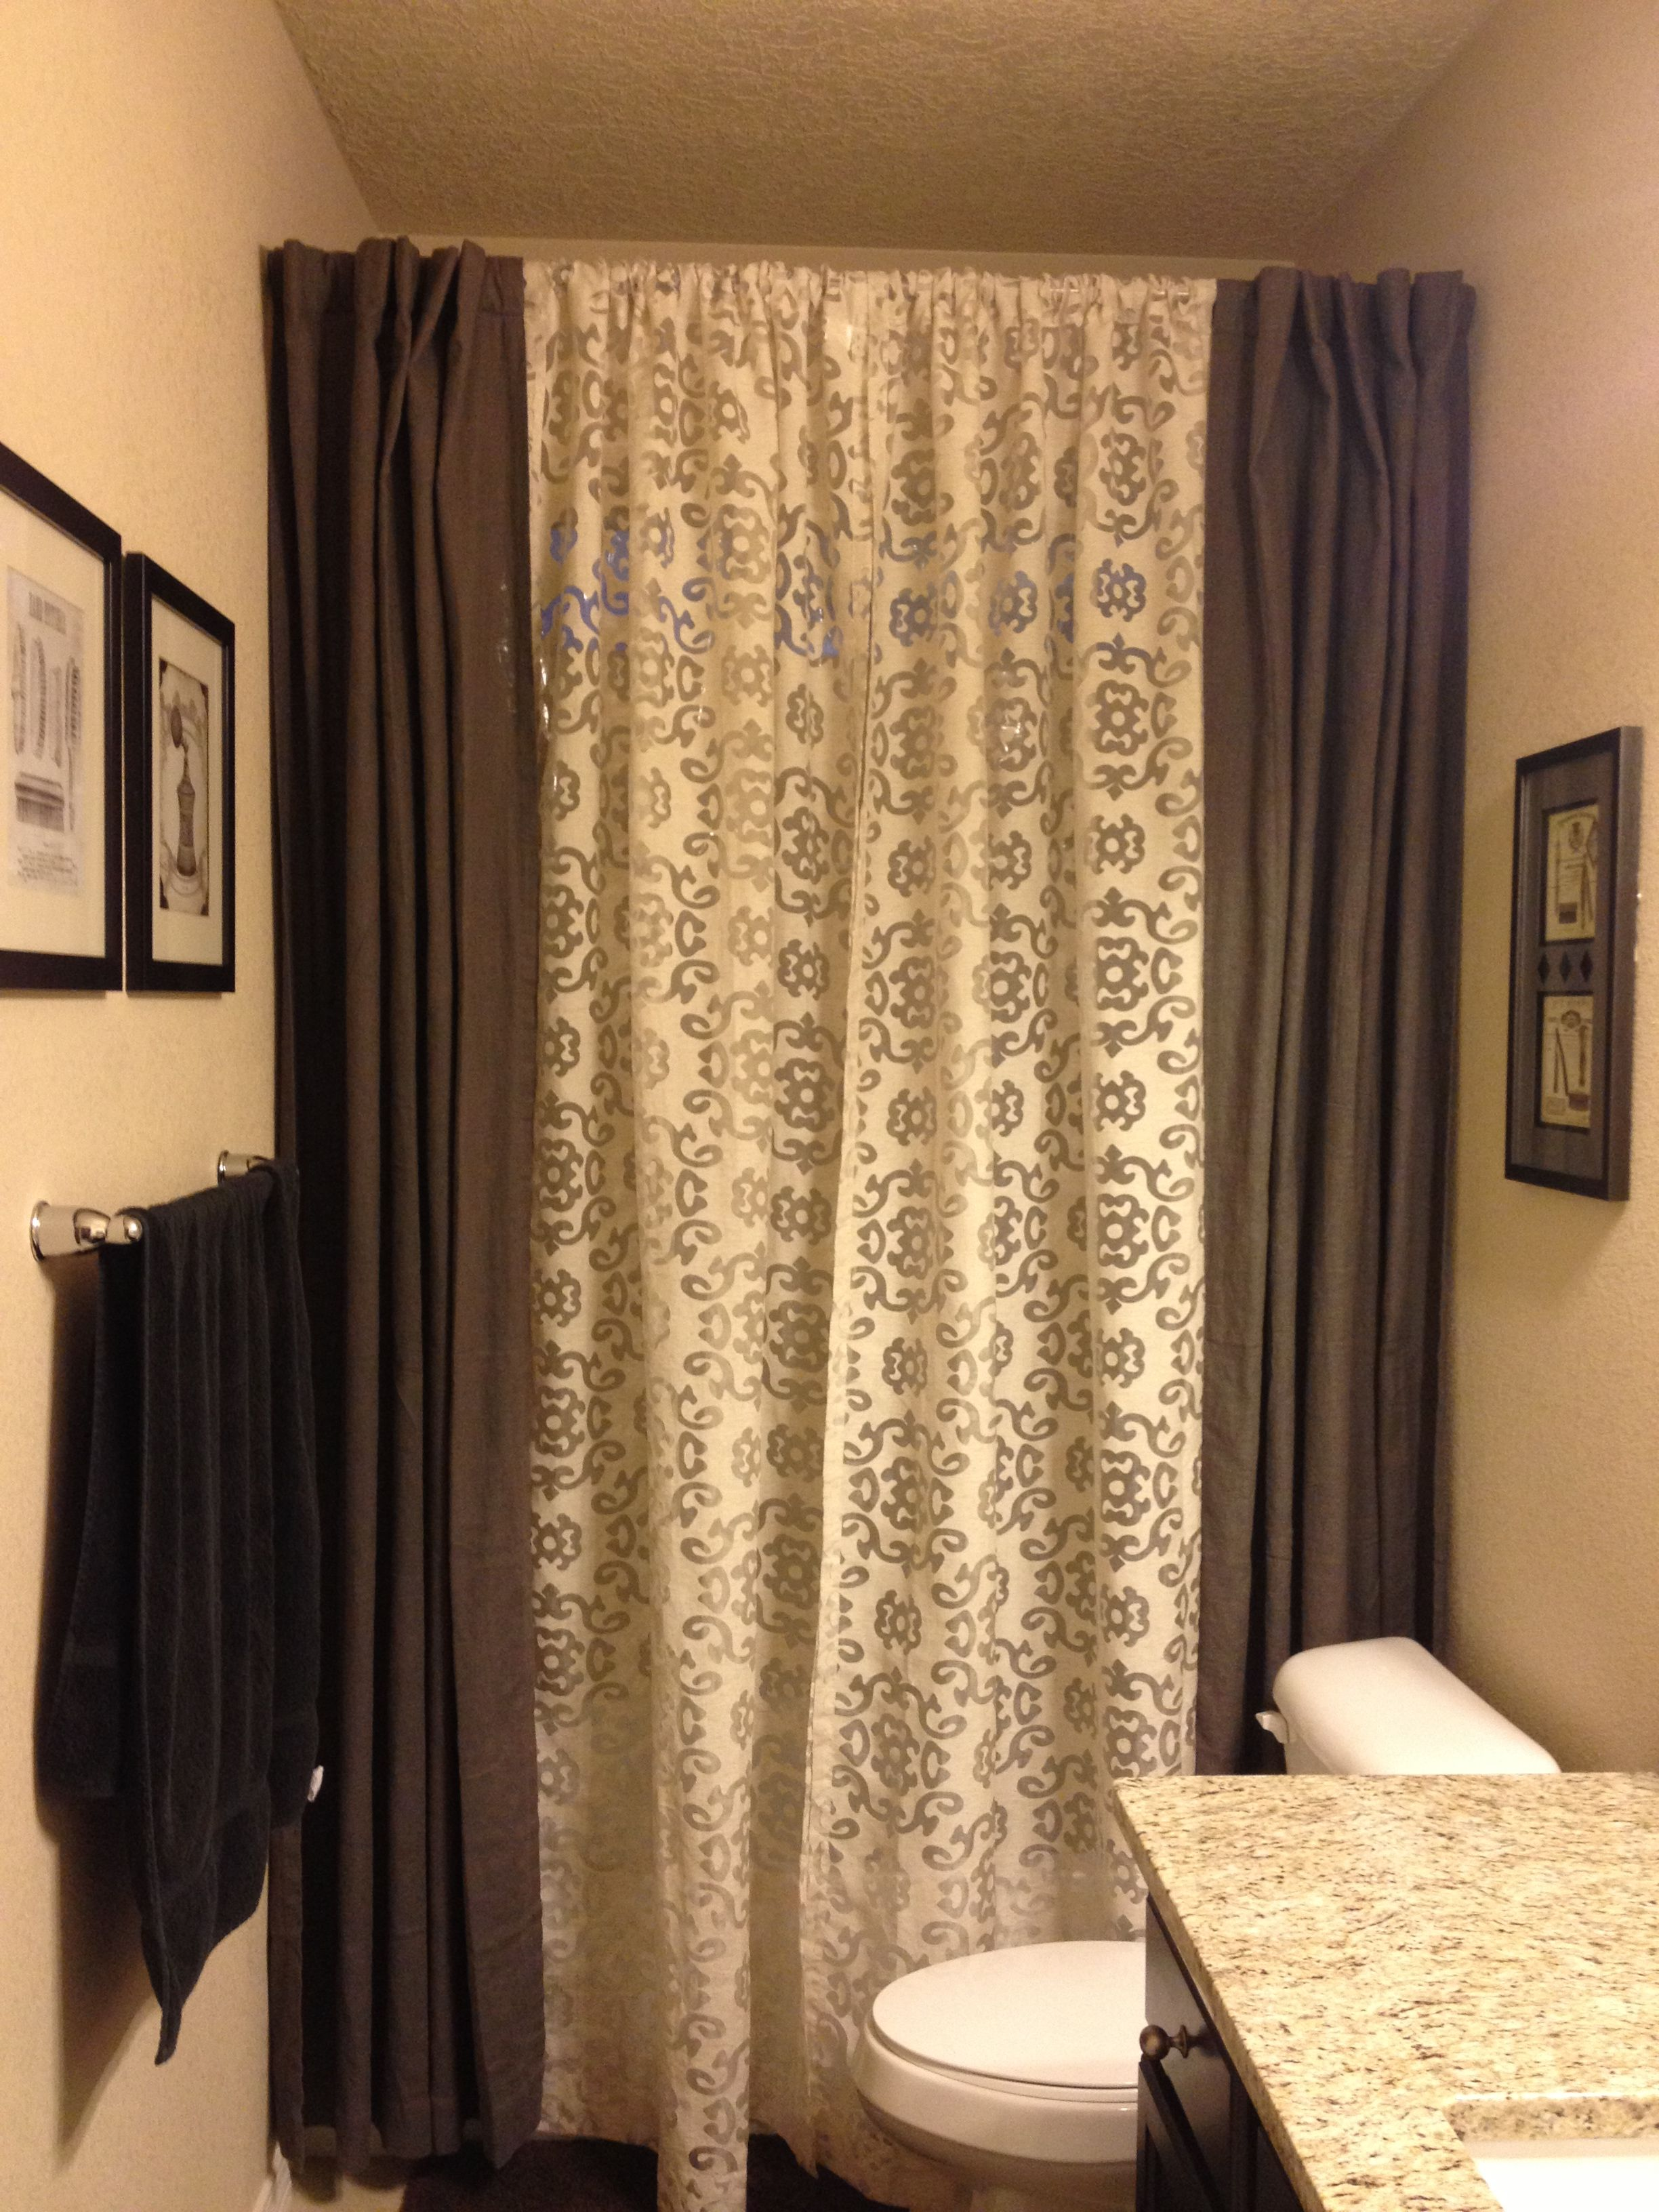 95 Or 102 Curtain Panels Instead Of A 72 Shower Curtain Double